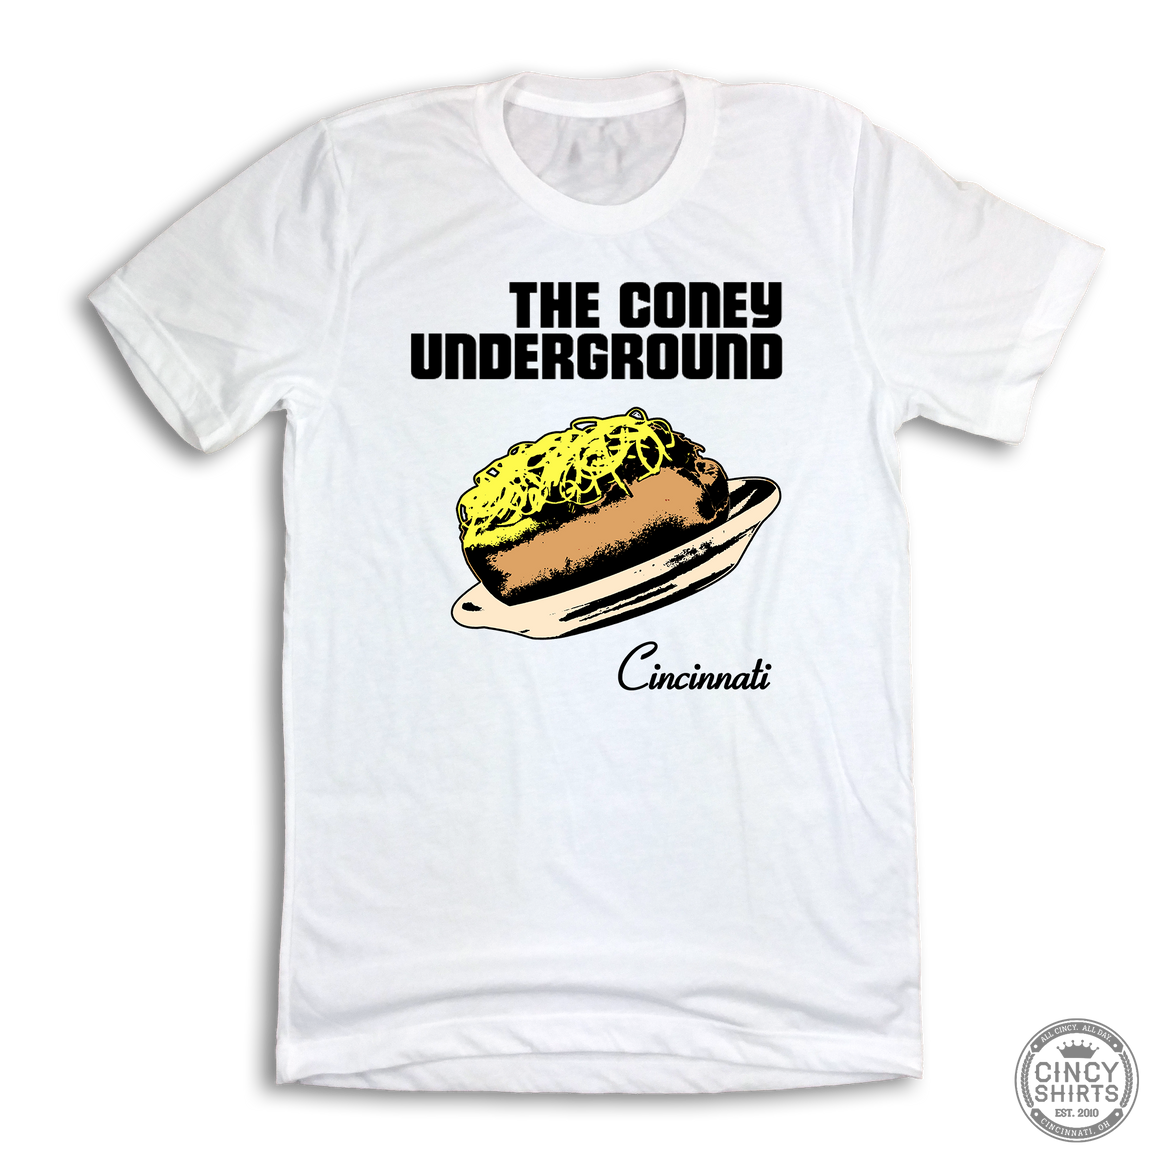 The Coney Underground